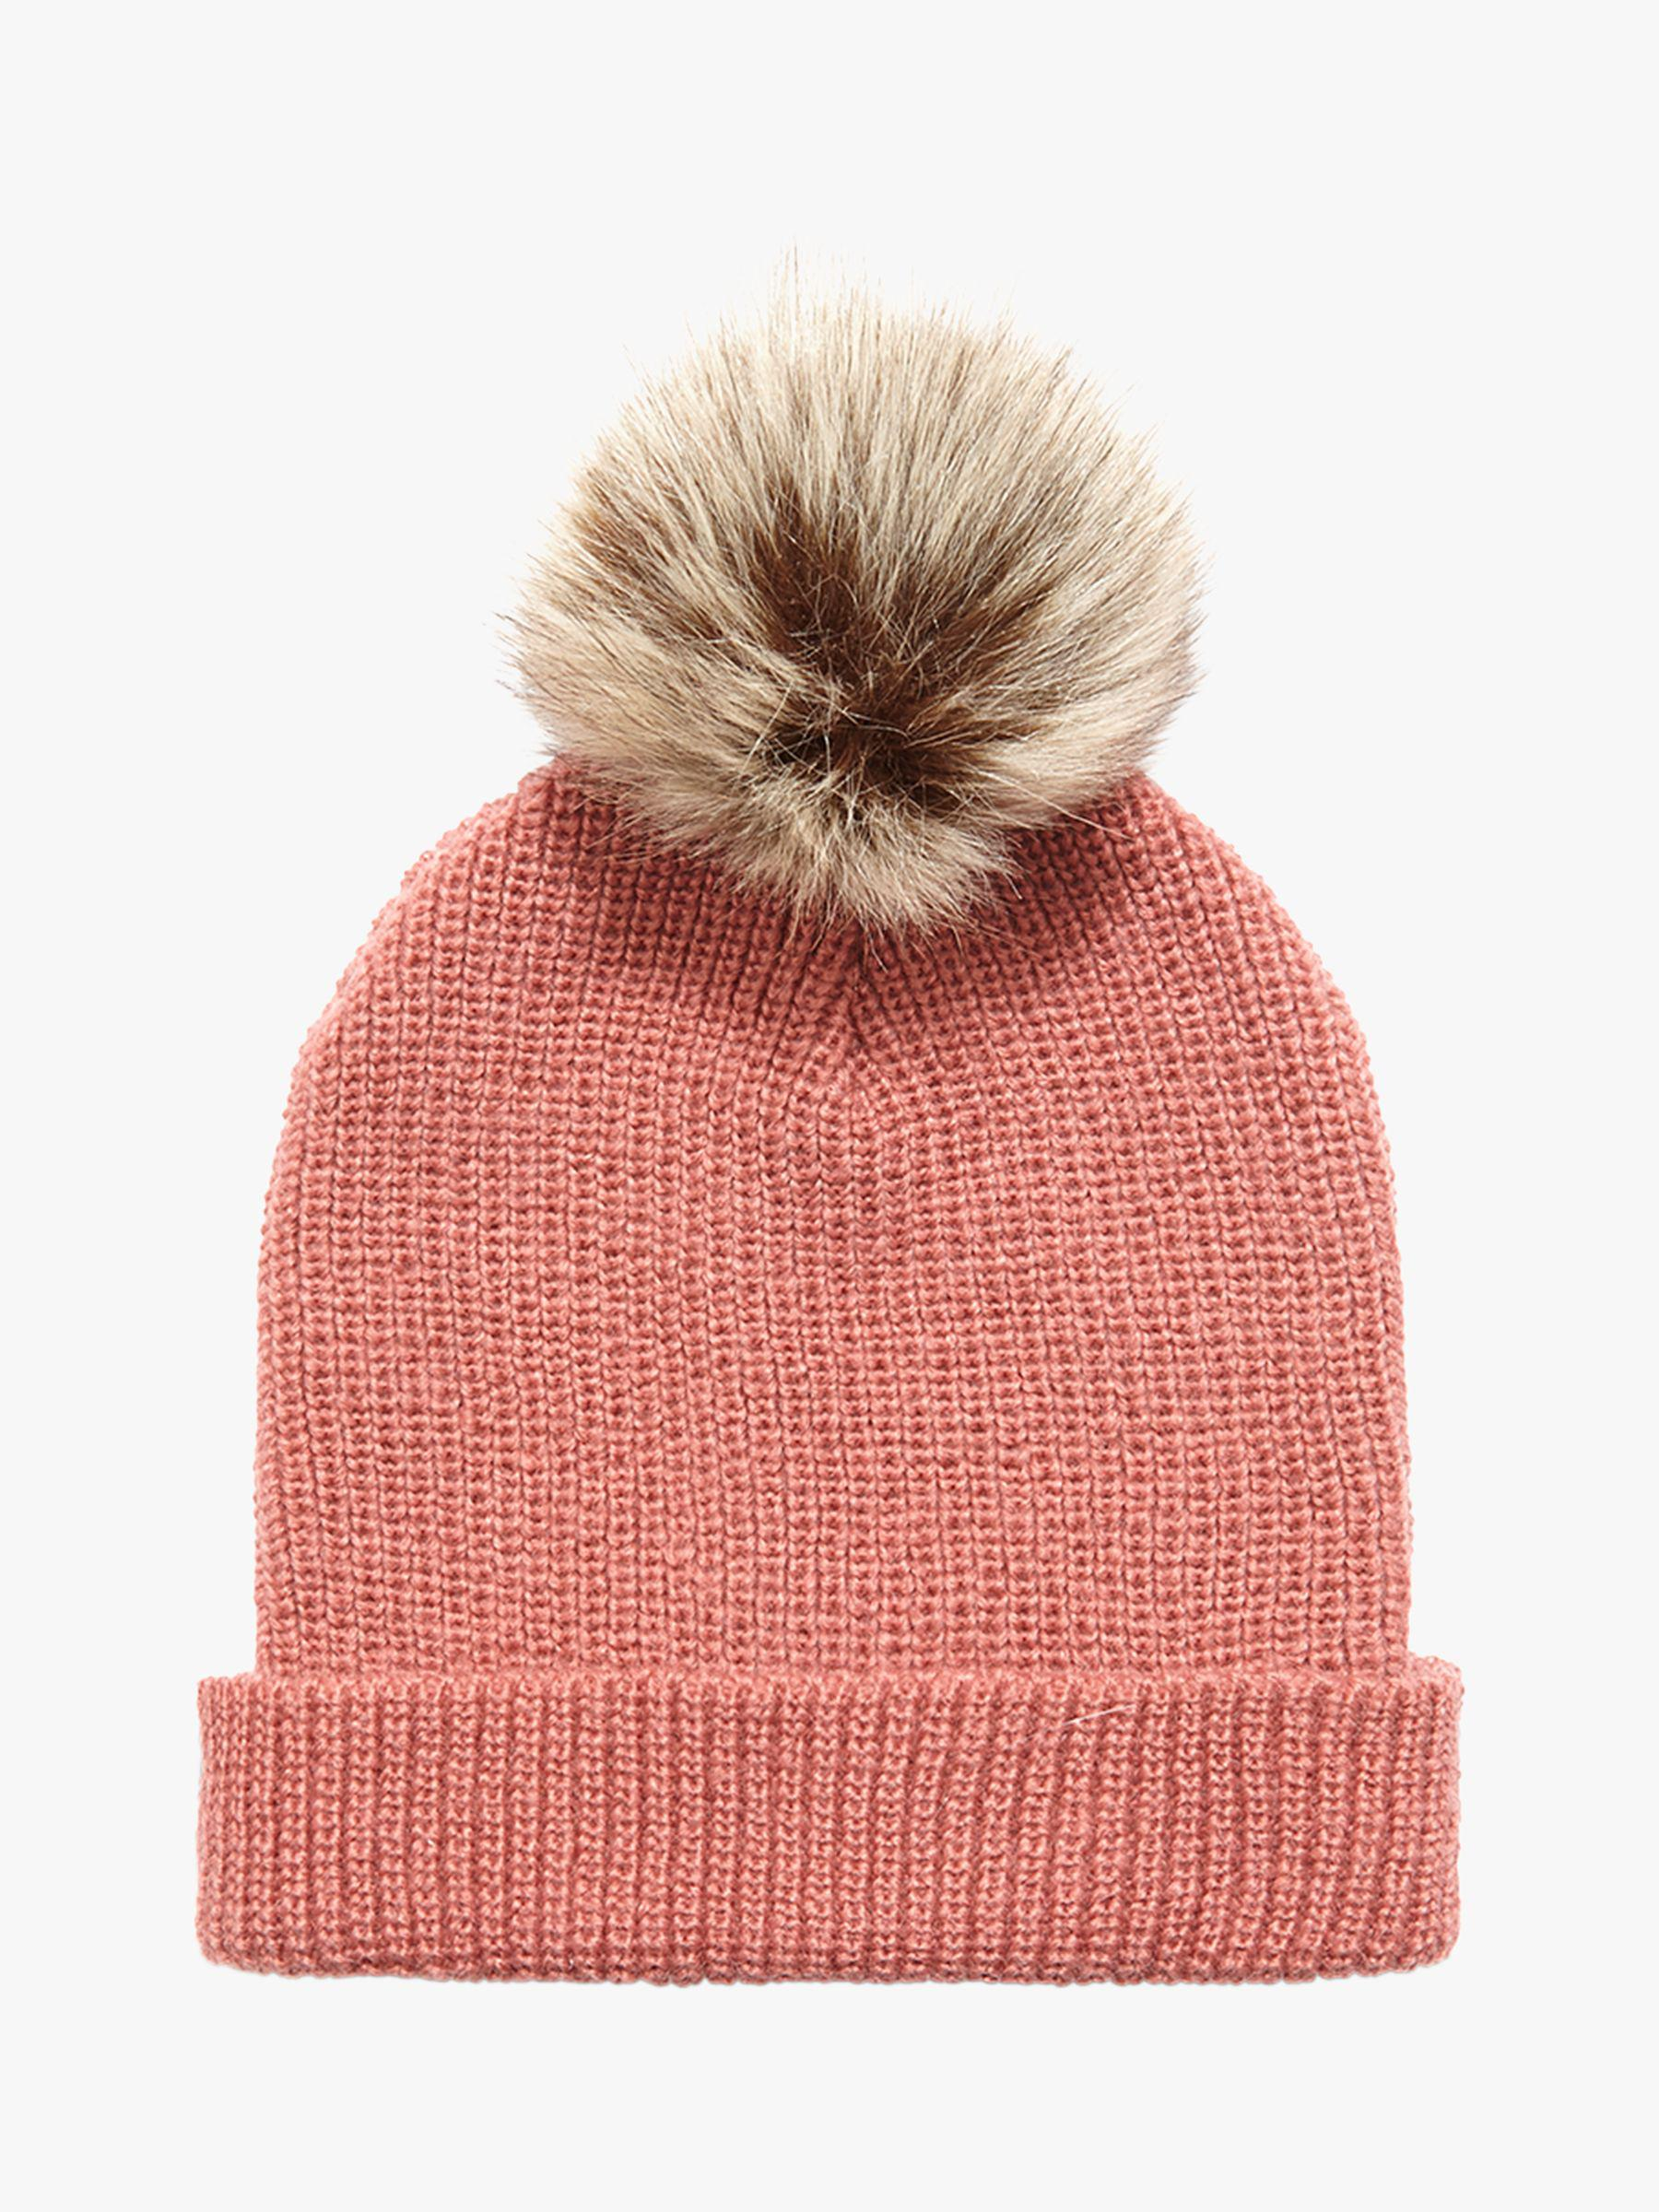 0e345dd257de9 Phase Eight Violetta Pom Pom Beanie Hat in Pink - Lyst